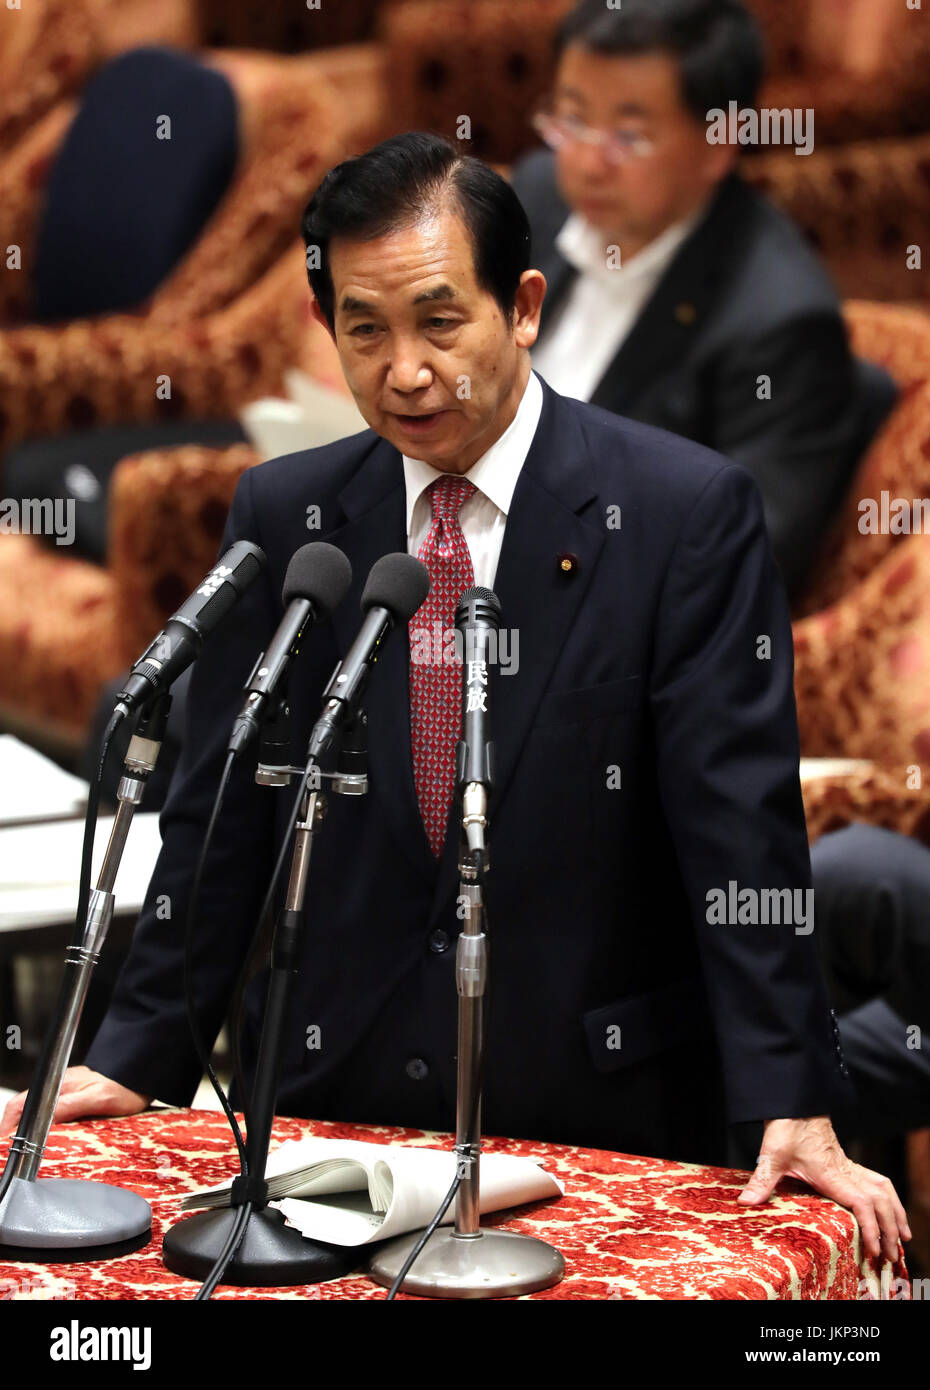 Tokyo, Japan. 24th July, 2017. Japanese Regional Revitalization Minister Kozo Yamamoto answers a question to an - Stock Image